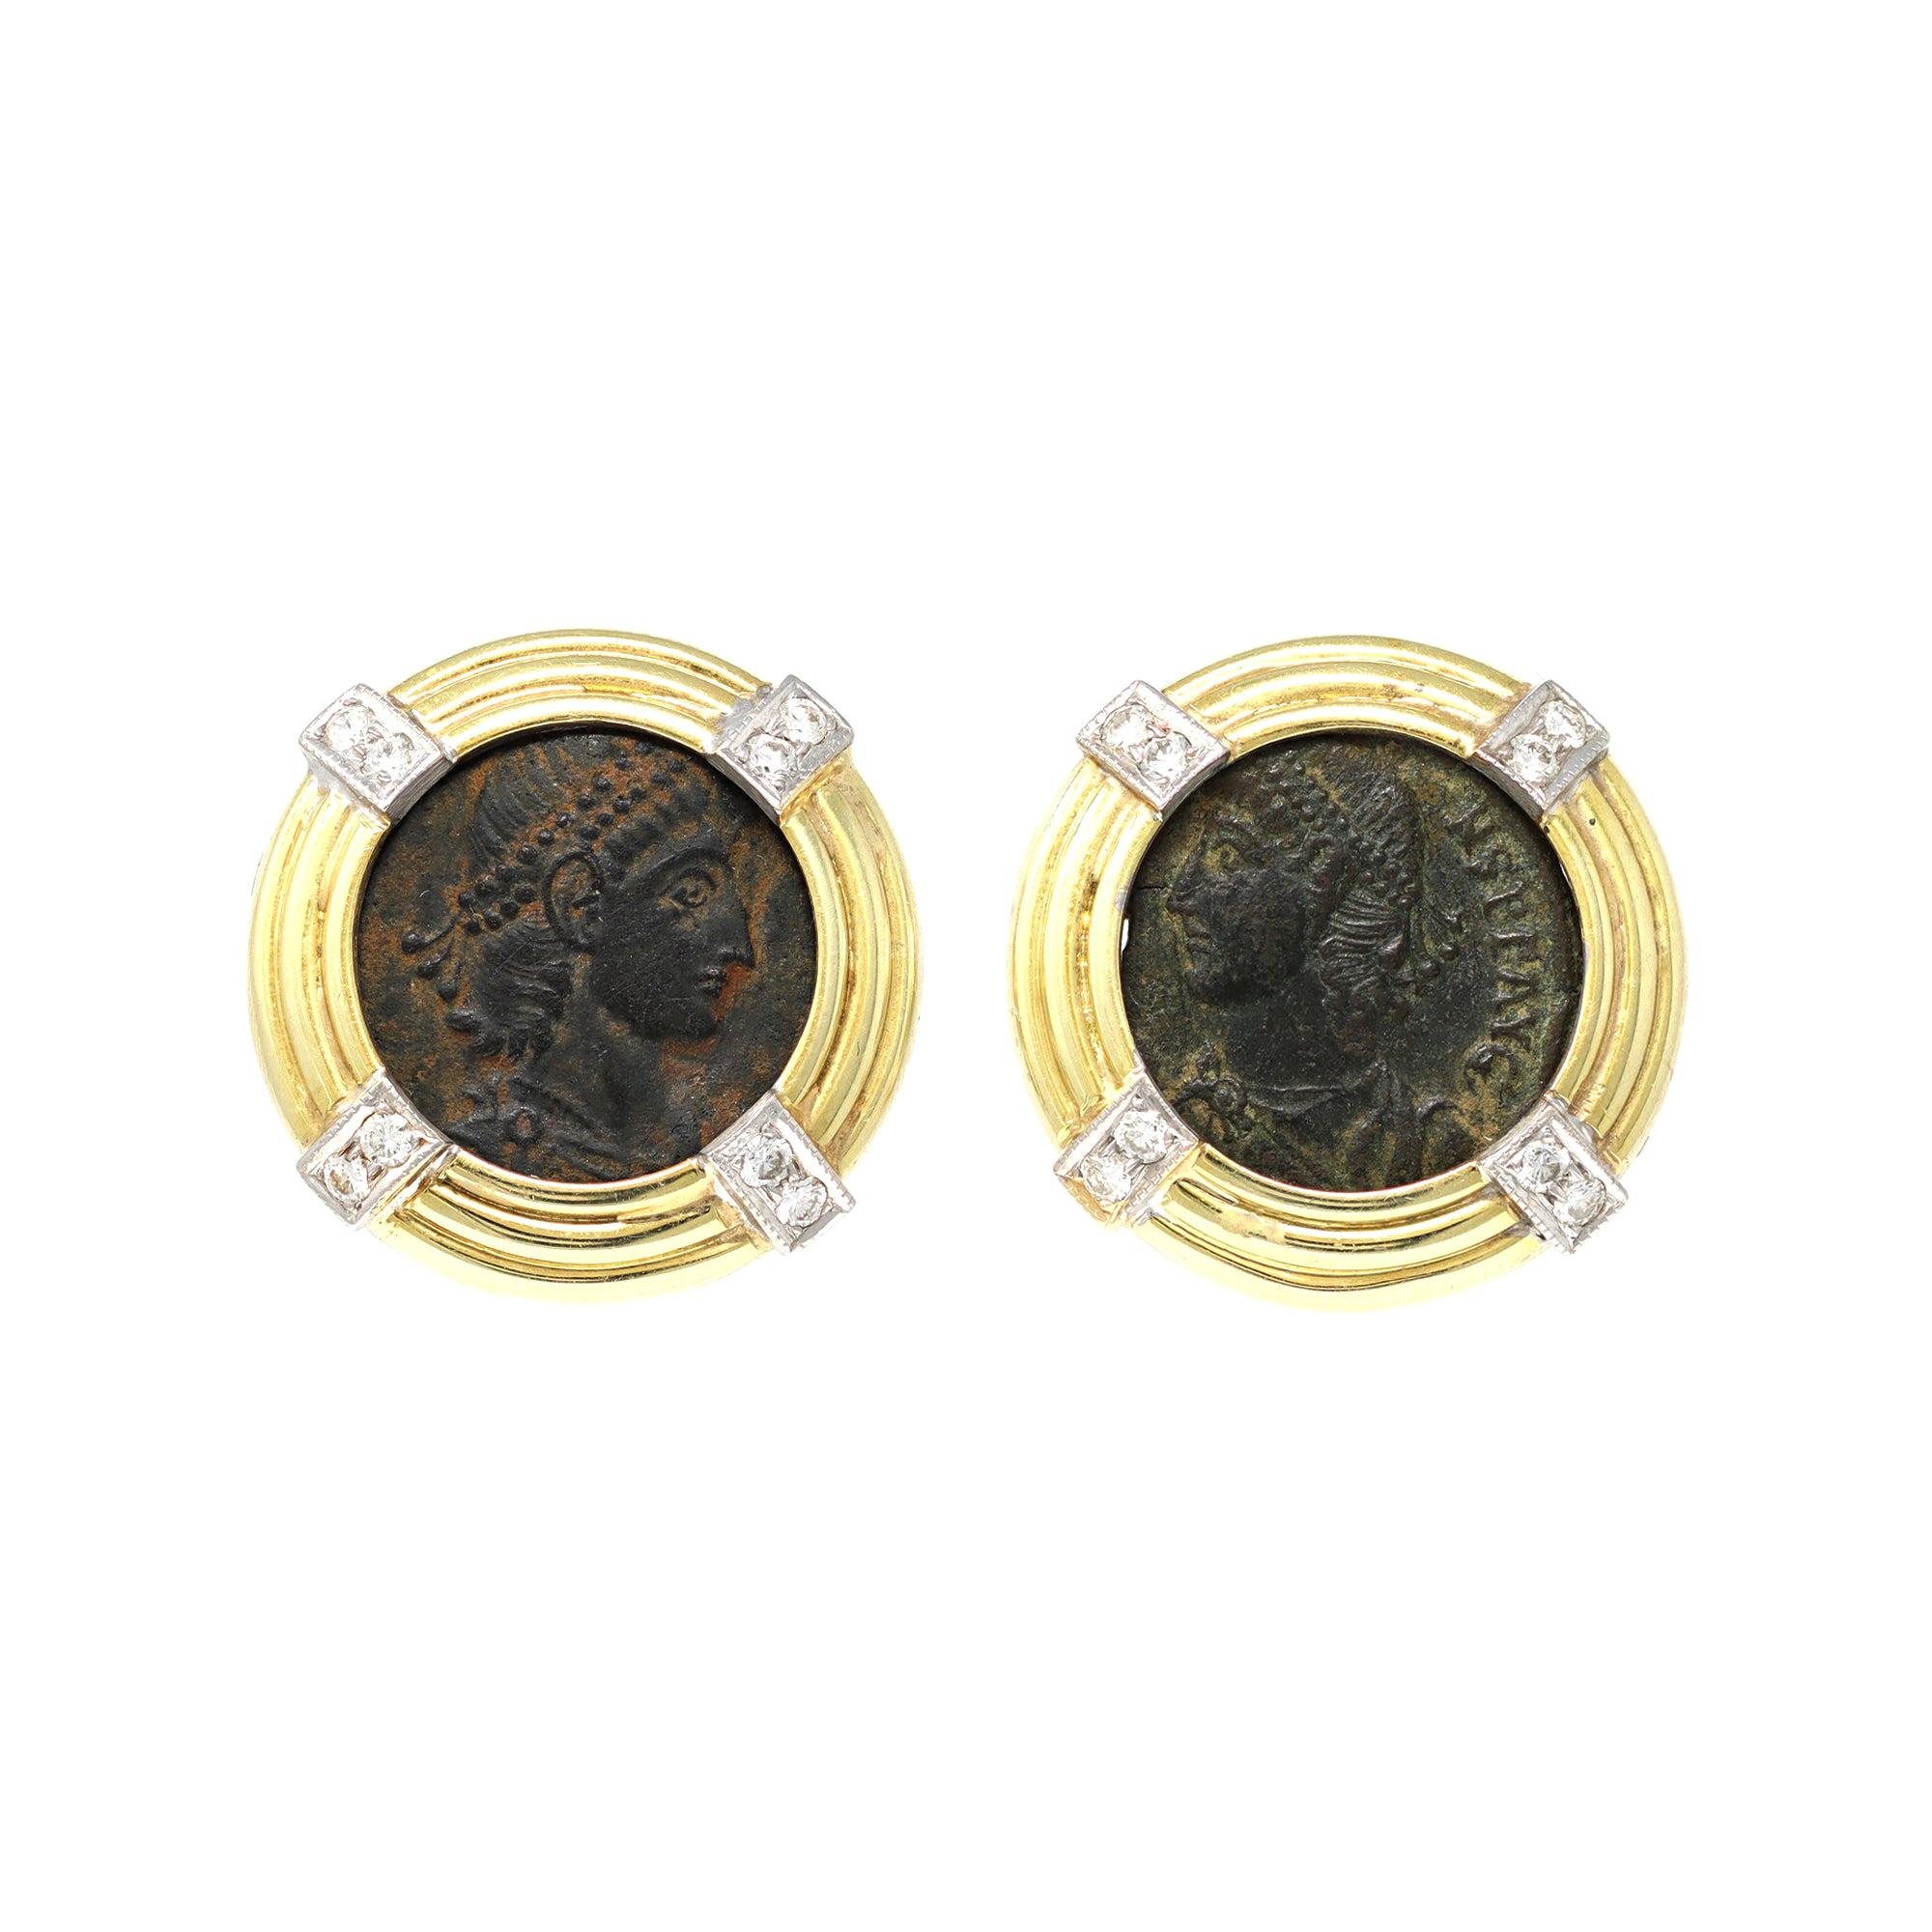 Ancient Roman Coin Clip On Earrings with Diamond Accents in 18k